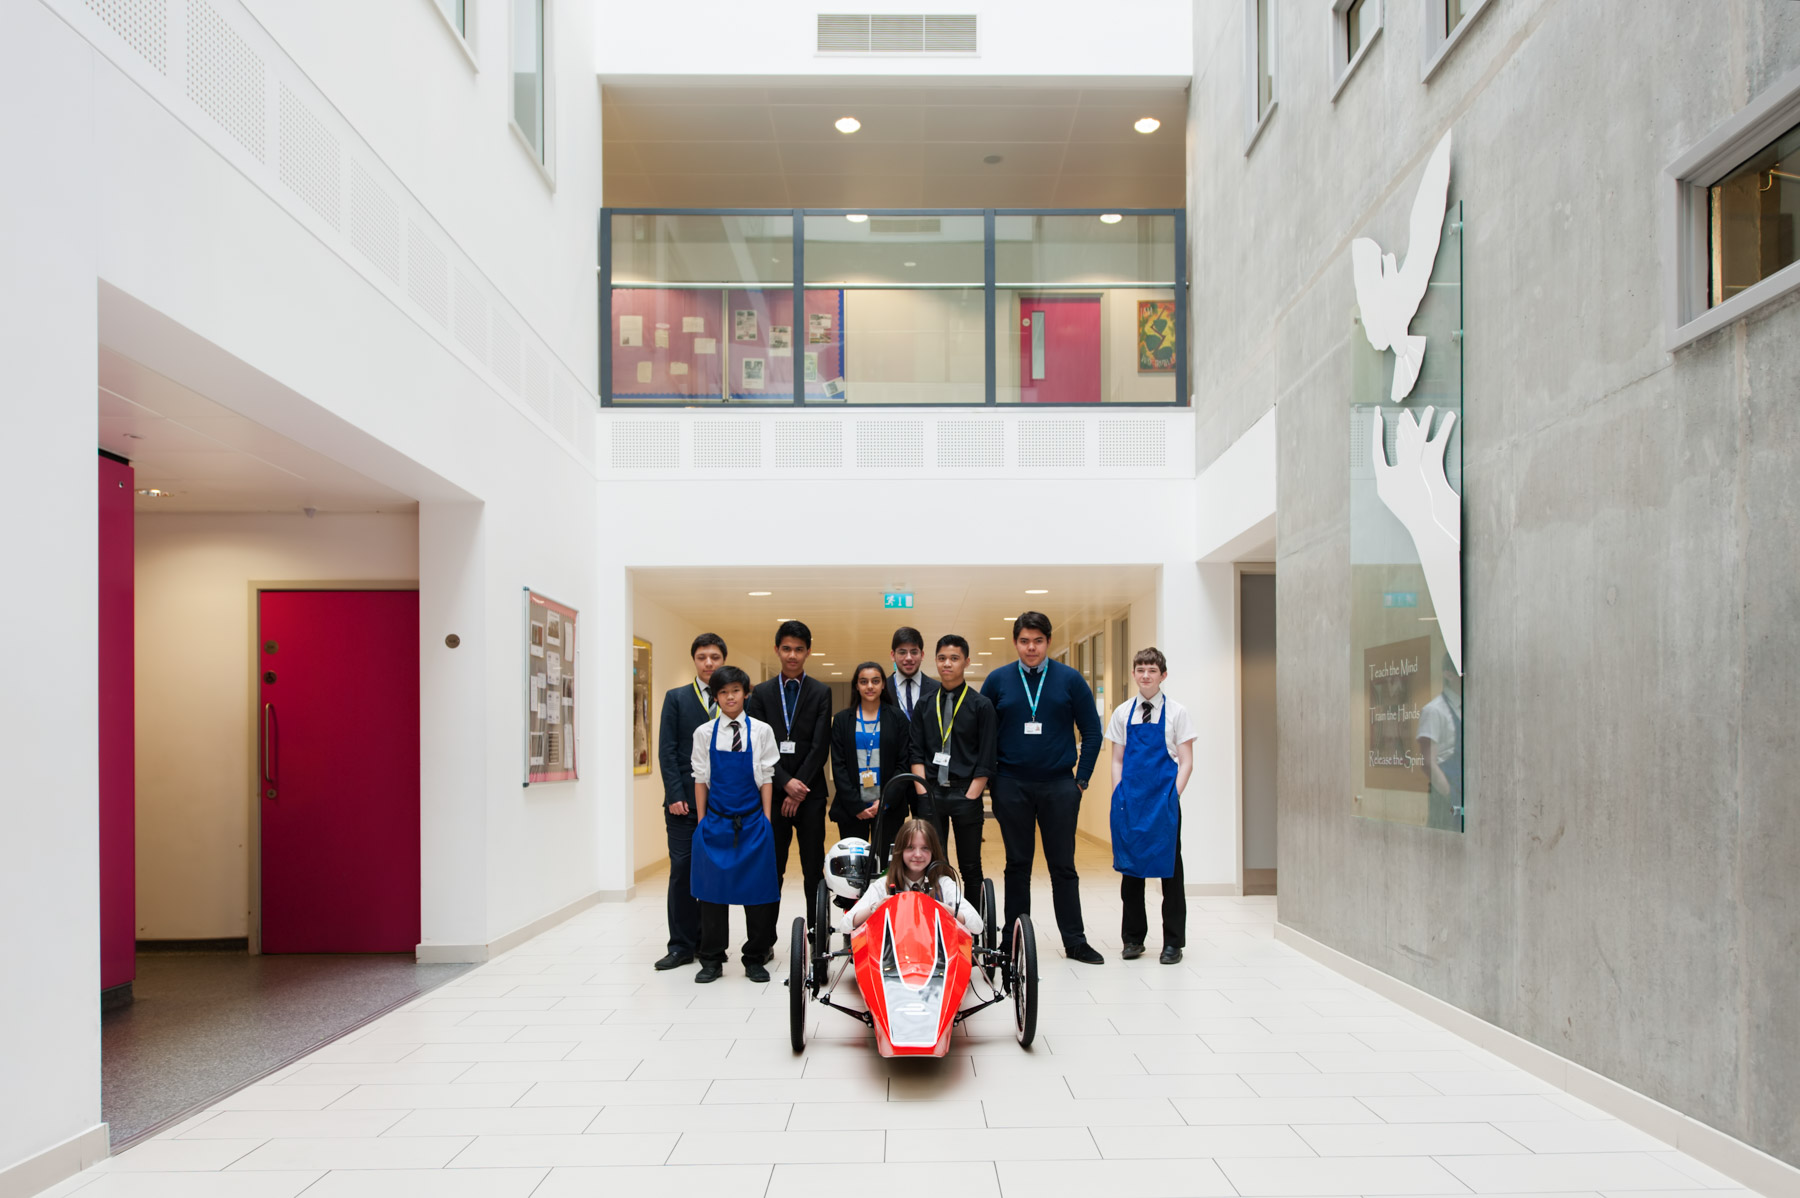 Team of students at Chelsea Academy with school racing car